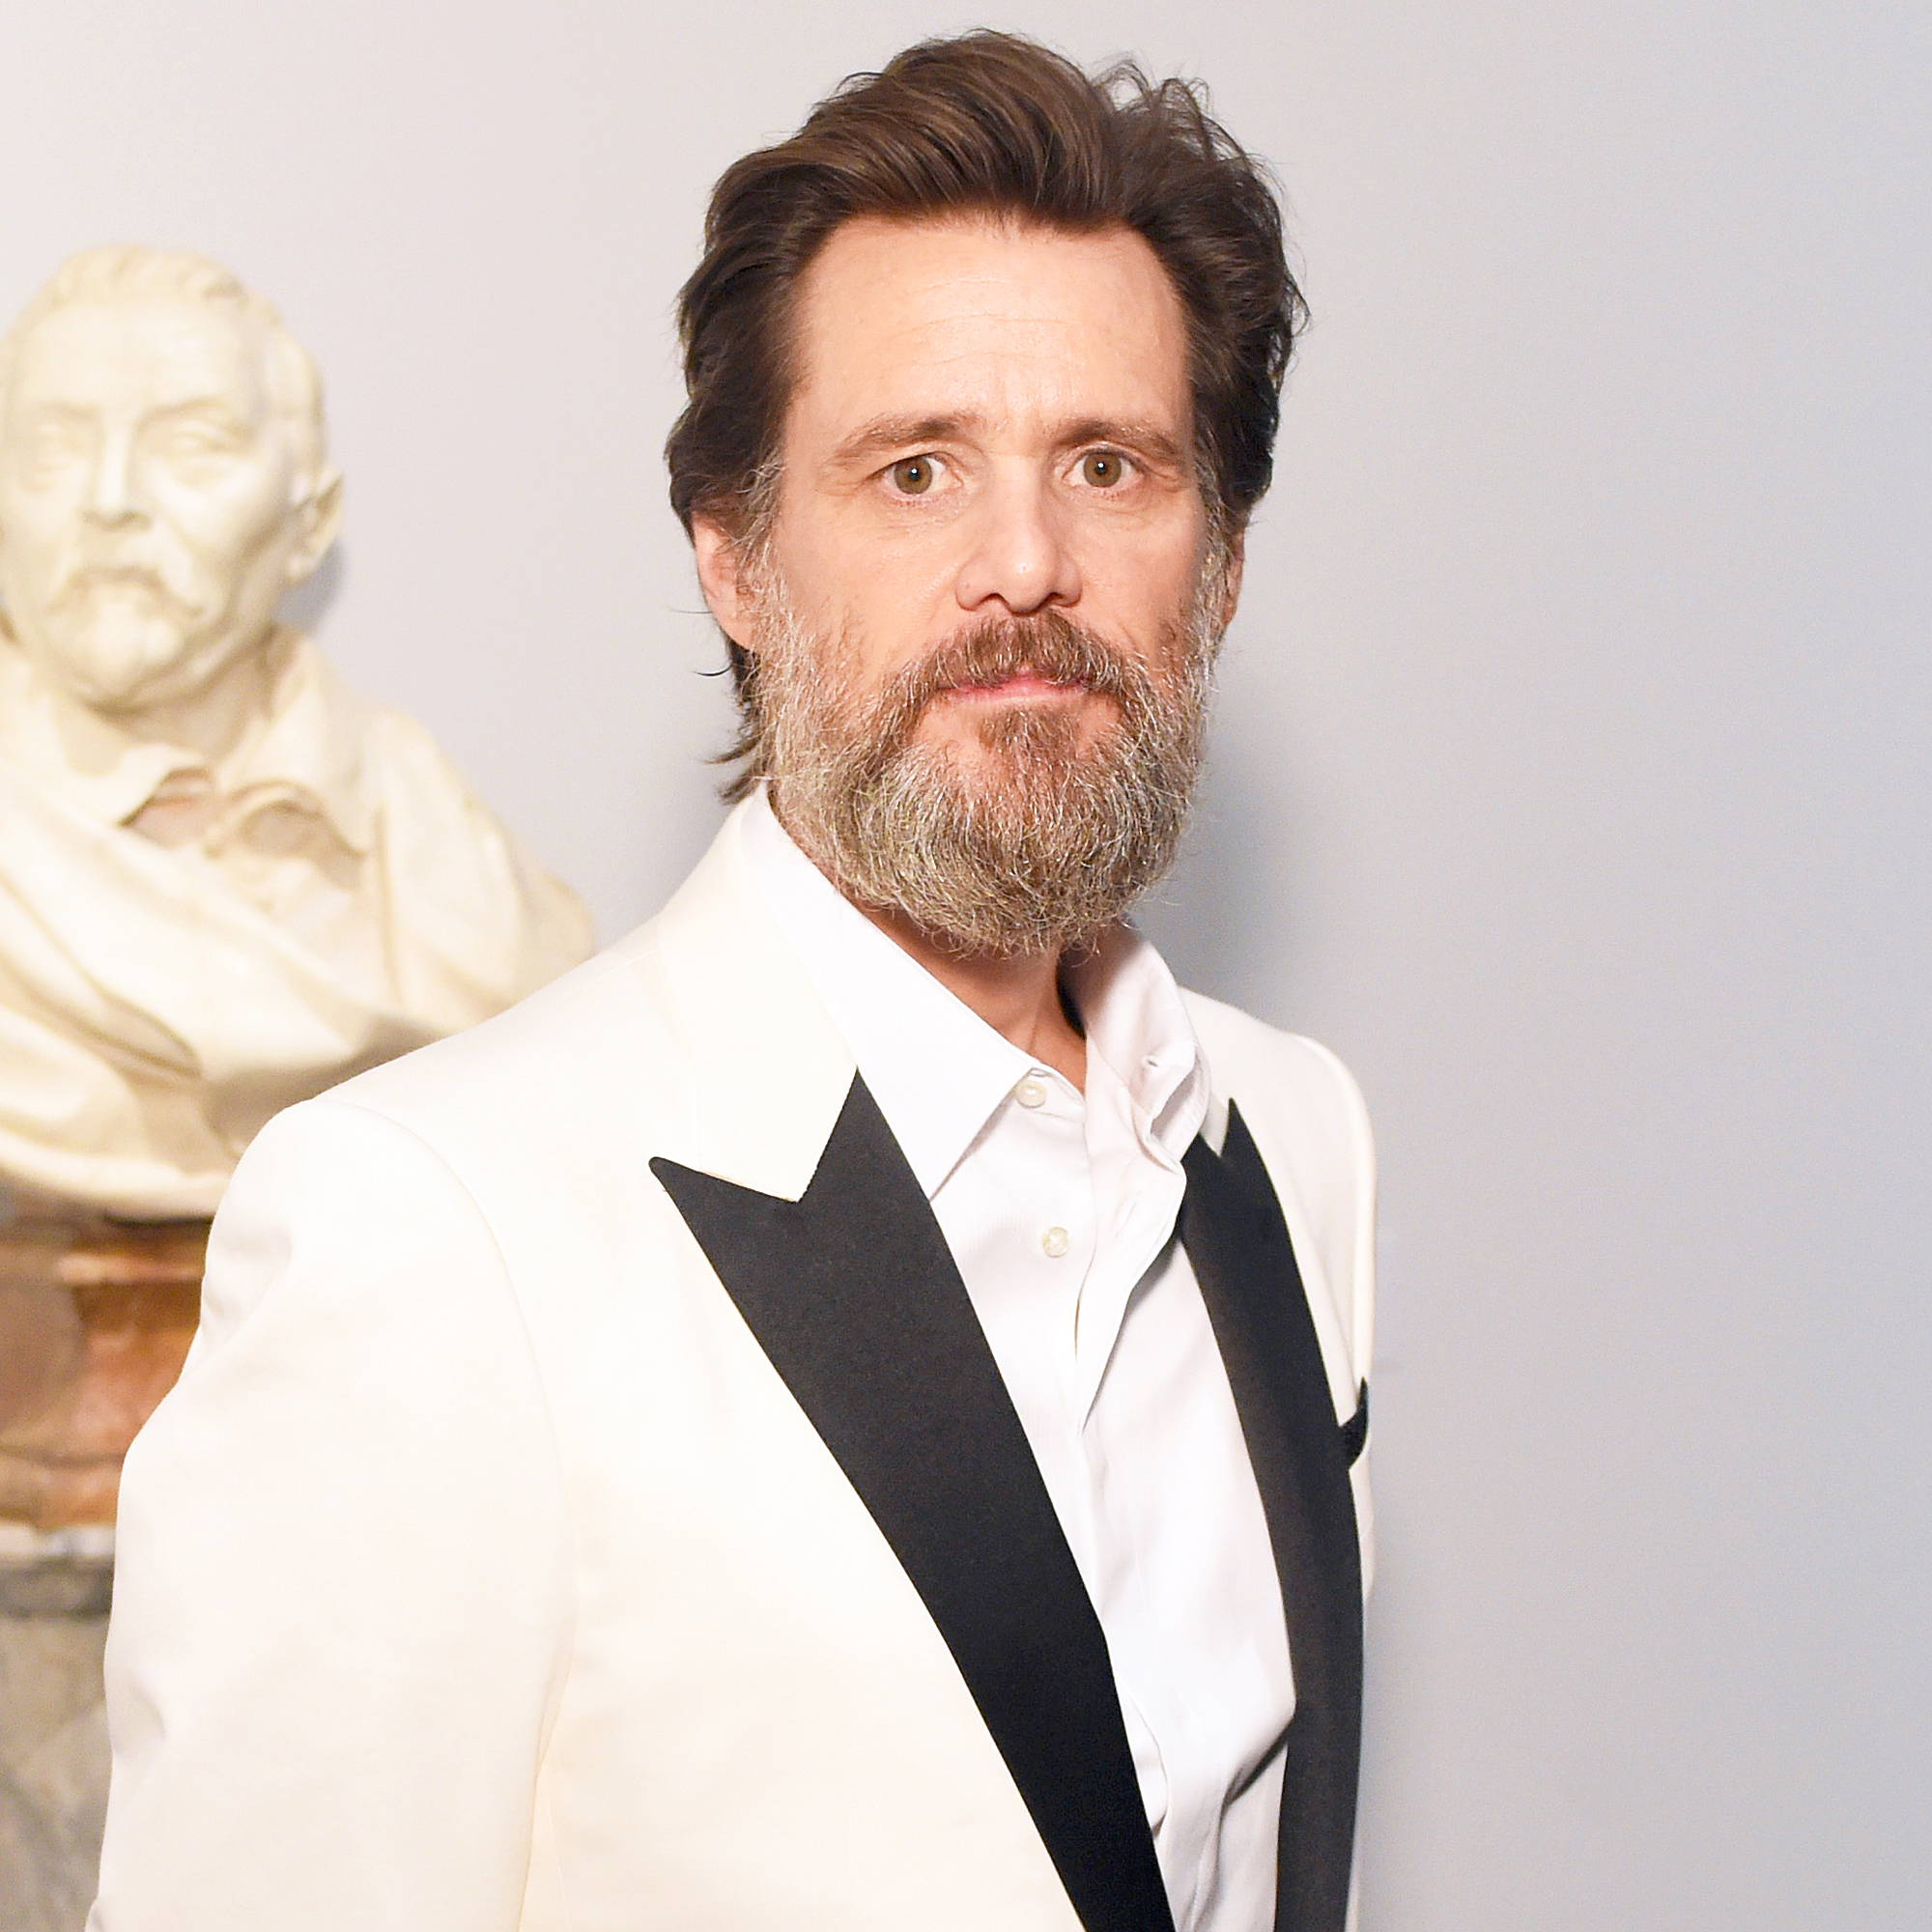 Tests were forged: Jim Carrey